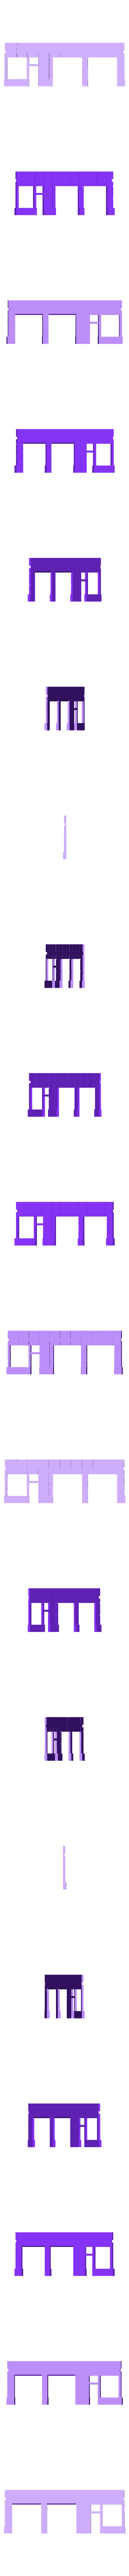 Wall_Front_for_Opening_Doors.stl Download free STL file HO Scale Service Station with Opening Doors • 3D printable template, kabrumble